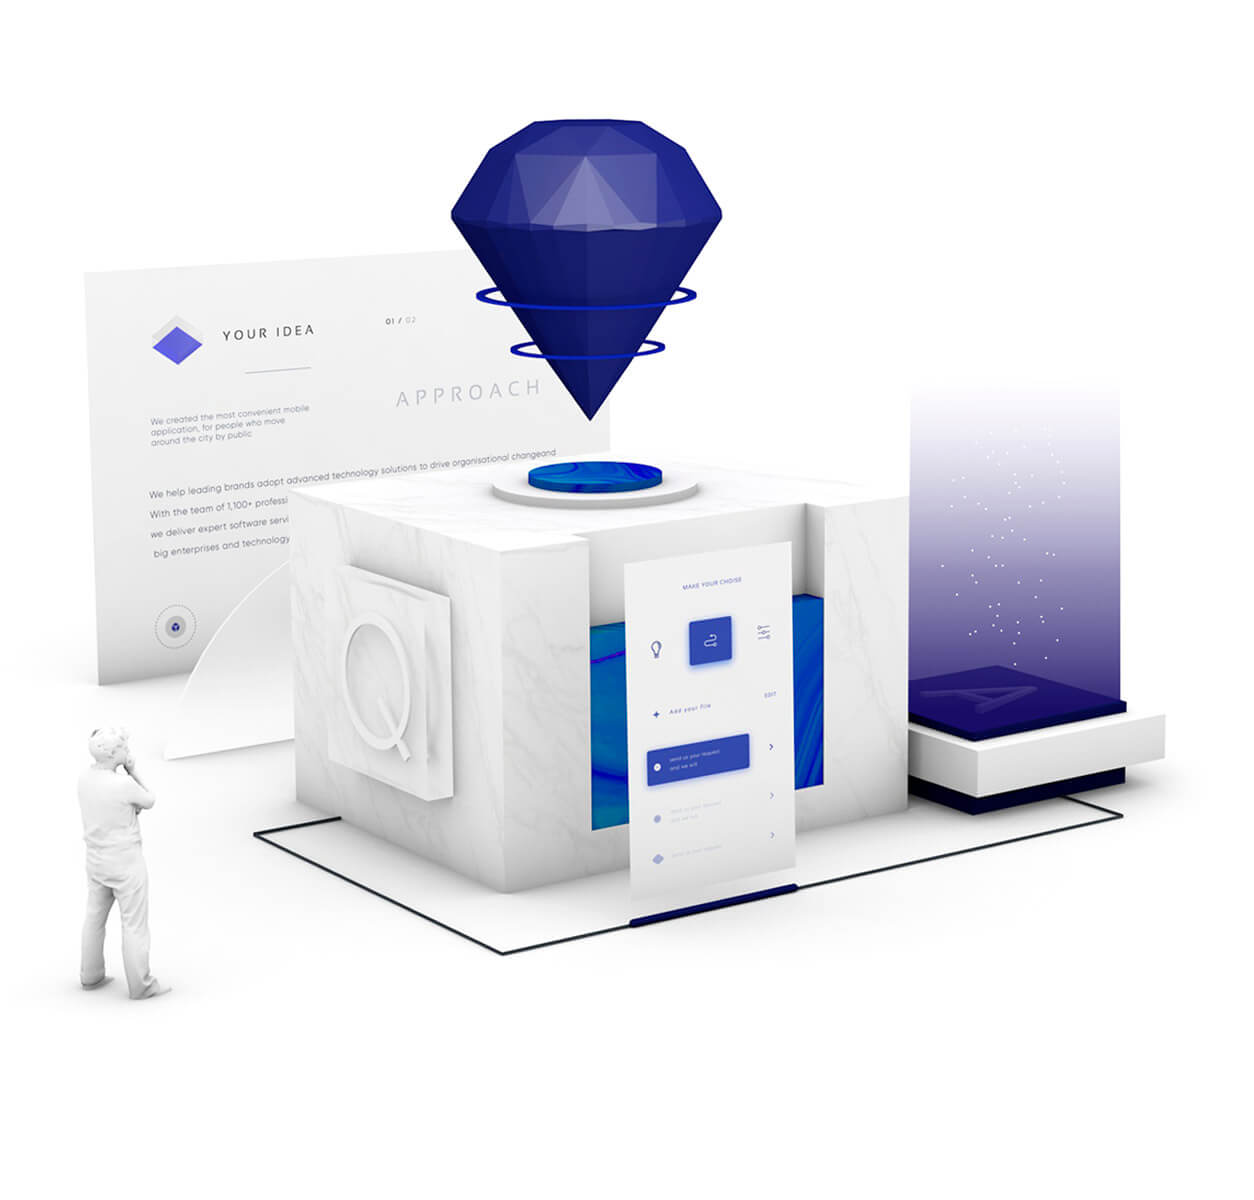 Quality Assurance Services blue gem, white database